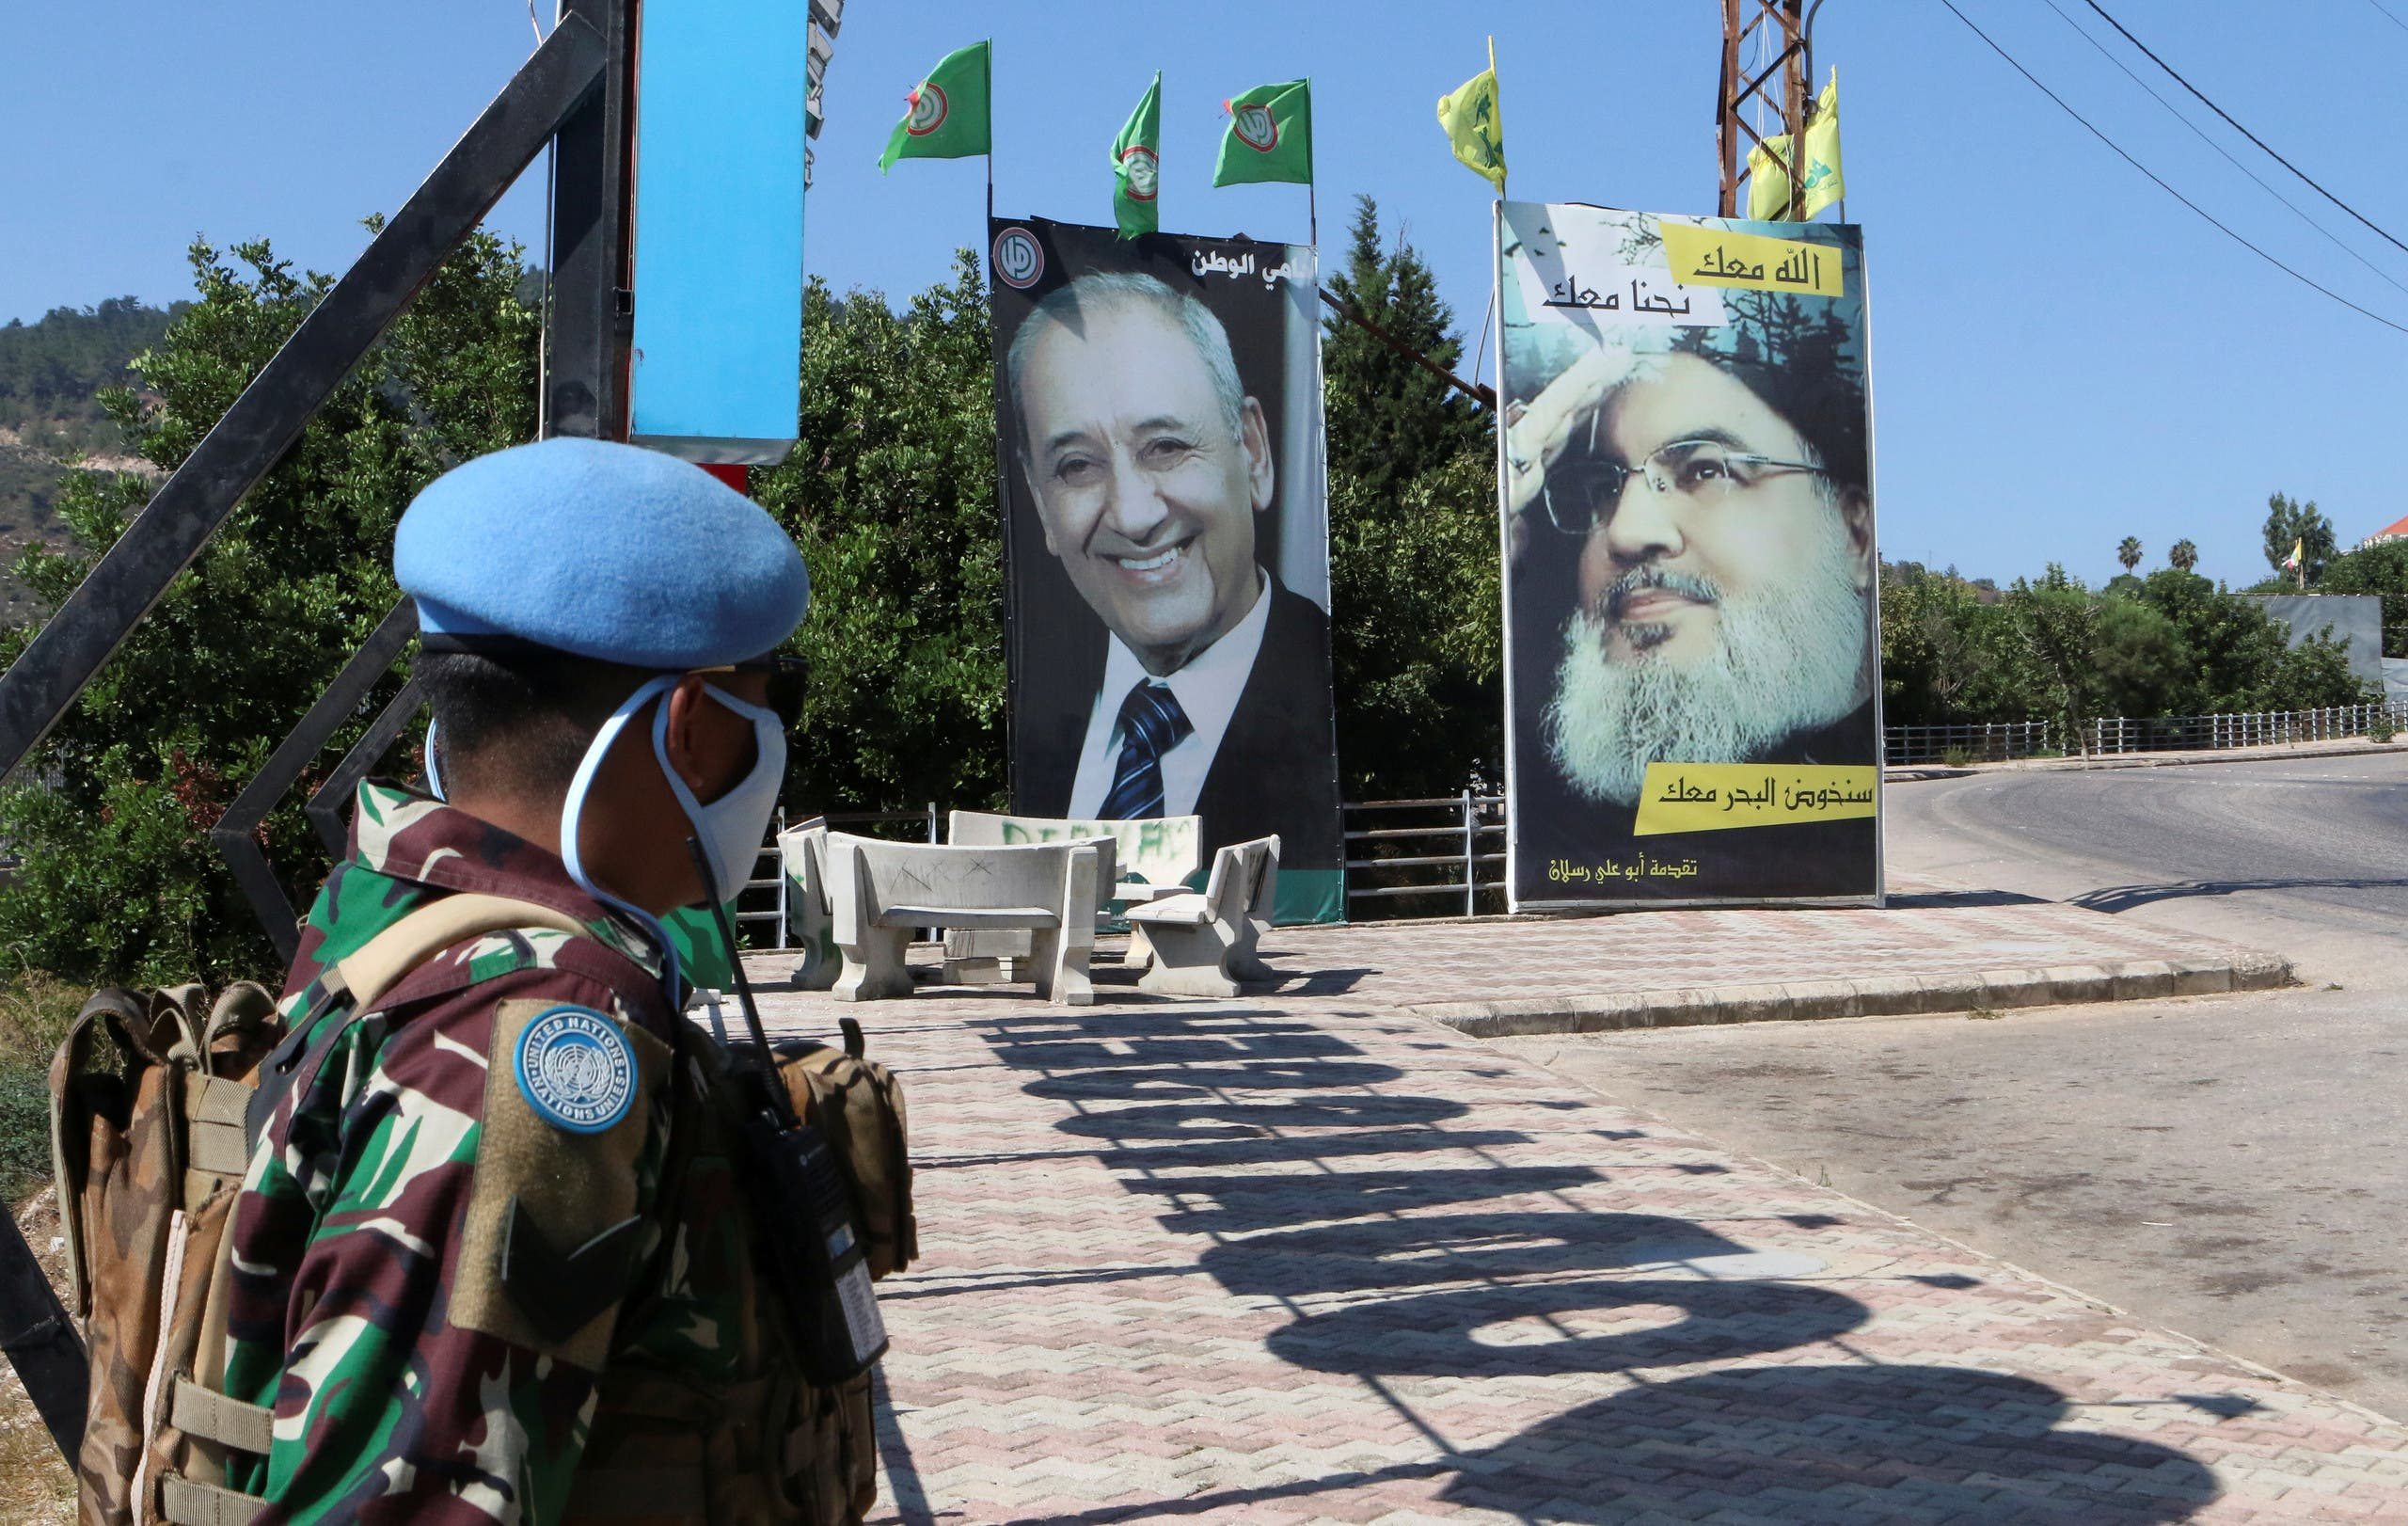 A United Nations peacekeeper (UNIFIL) stands near a poster depicting Lebanon's Hezbollah leader Sayyed Hassan Nasrallah, in Adaisseh village, near the Lebanese-Israeli border, Lebanon August 7, 2020. (Reuters)